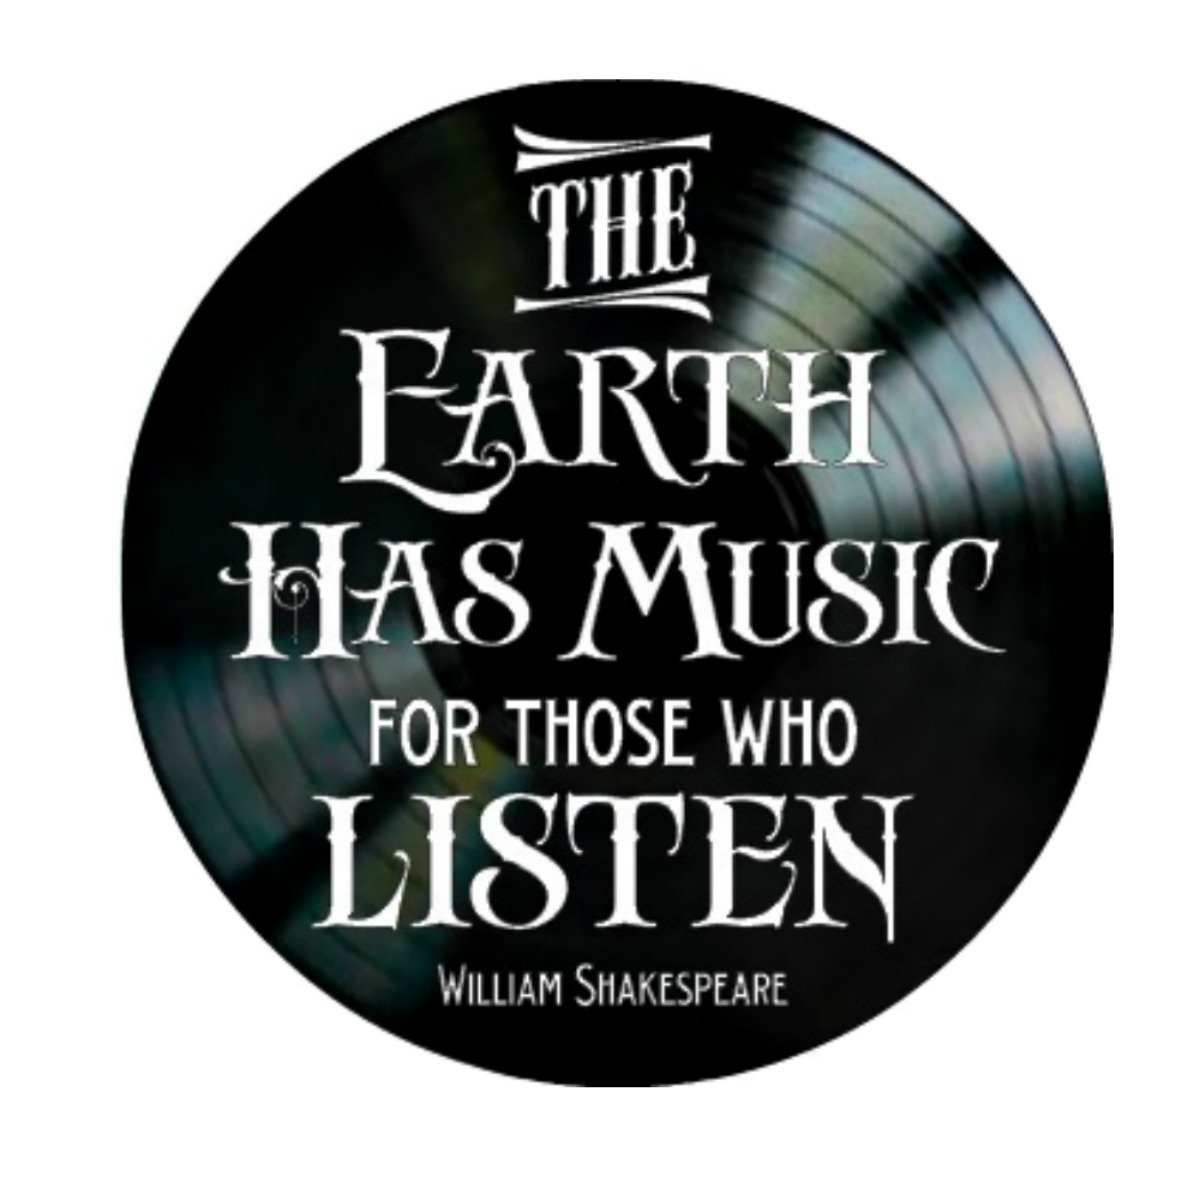 The Earth Has Music Quote by William Shakespeare on a Vinyl Record Album wall decor